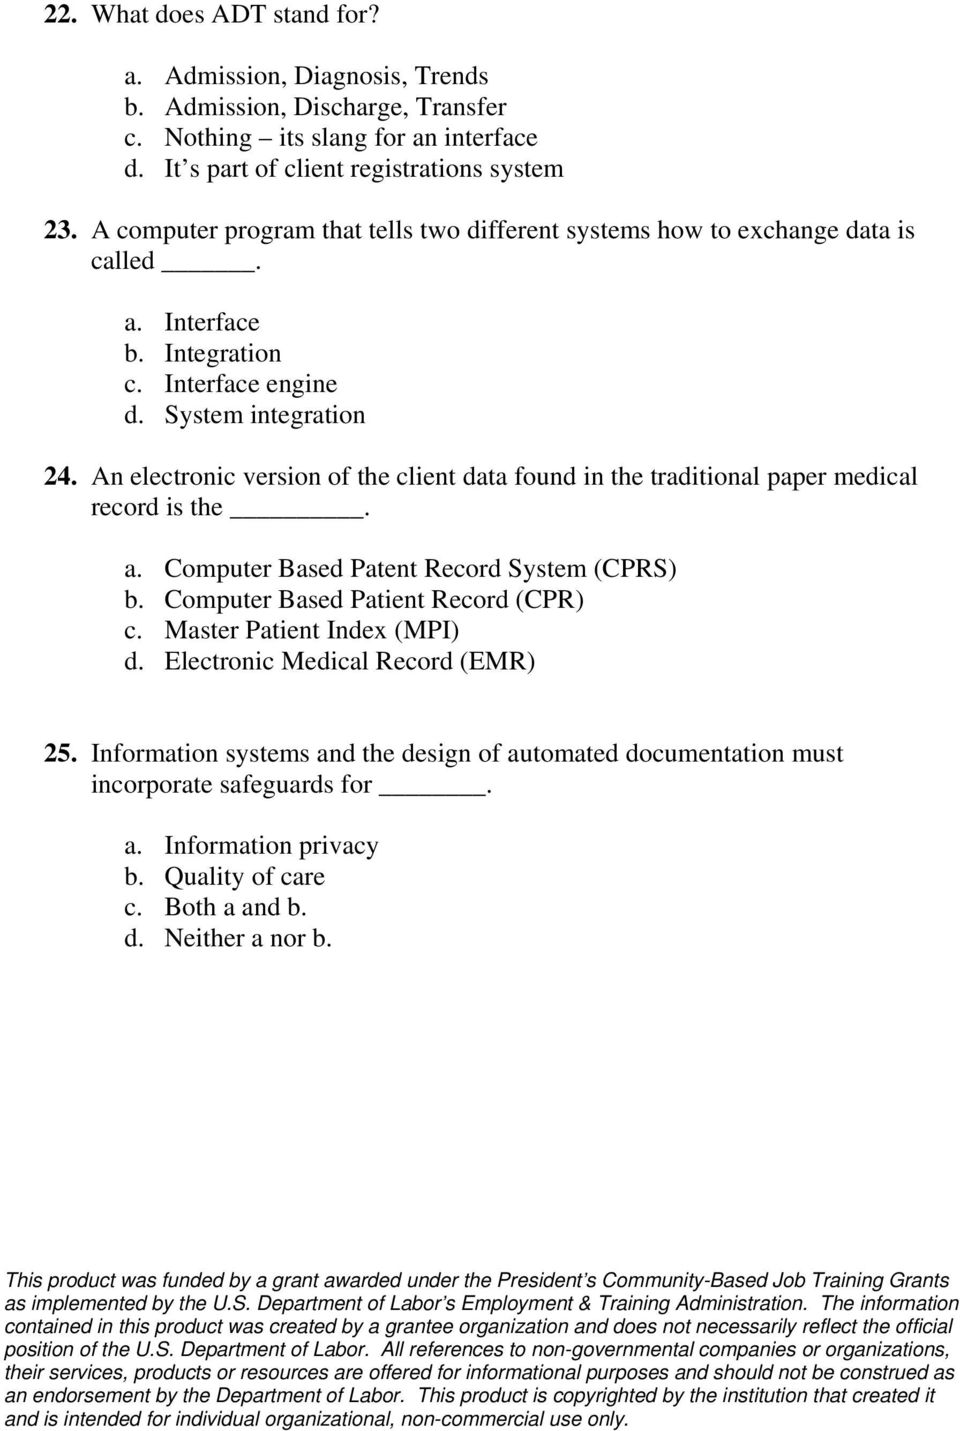 An electronic version of the client data found in the traditional paper medical record is the. a. Computer Based Patent Record System (CPRS) b. Computer Based Patient Record (CPR) c.